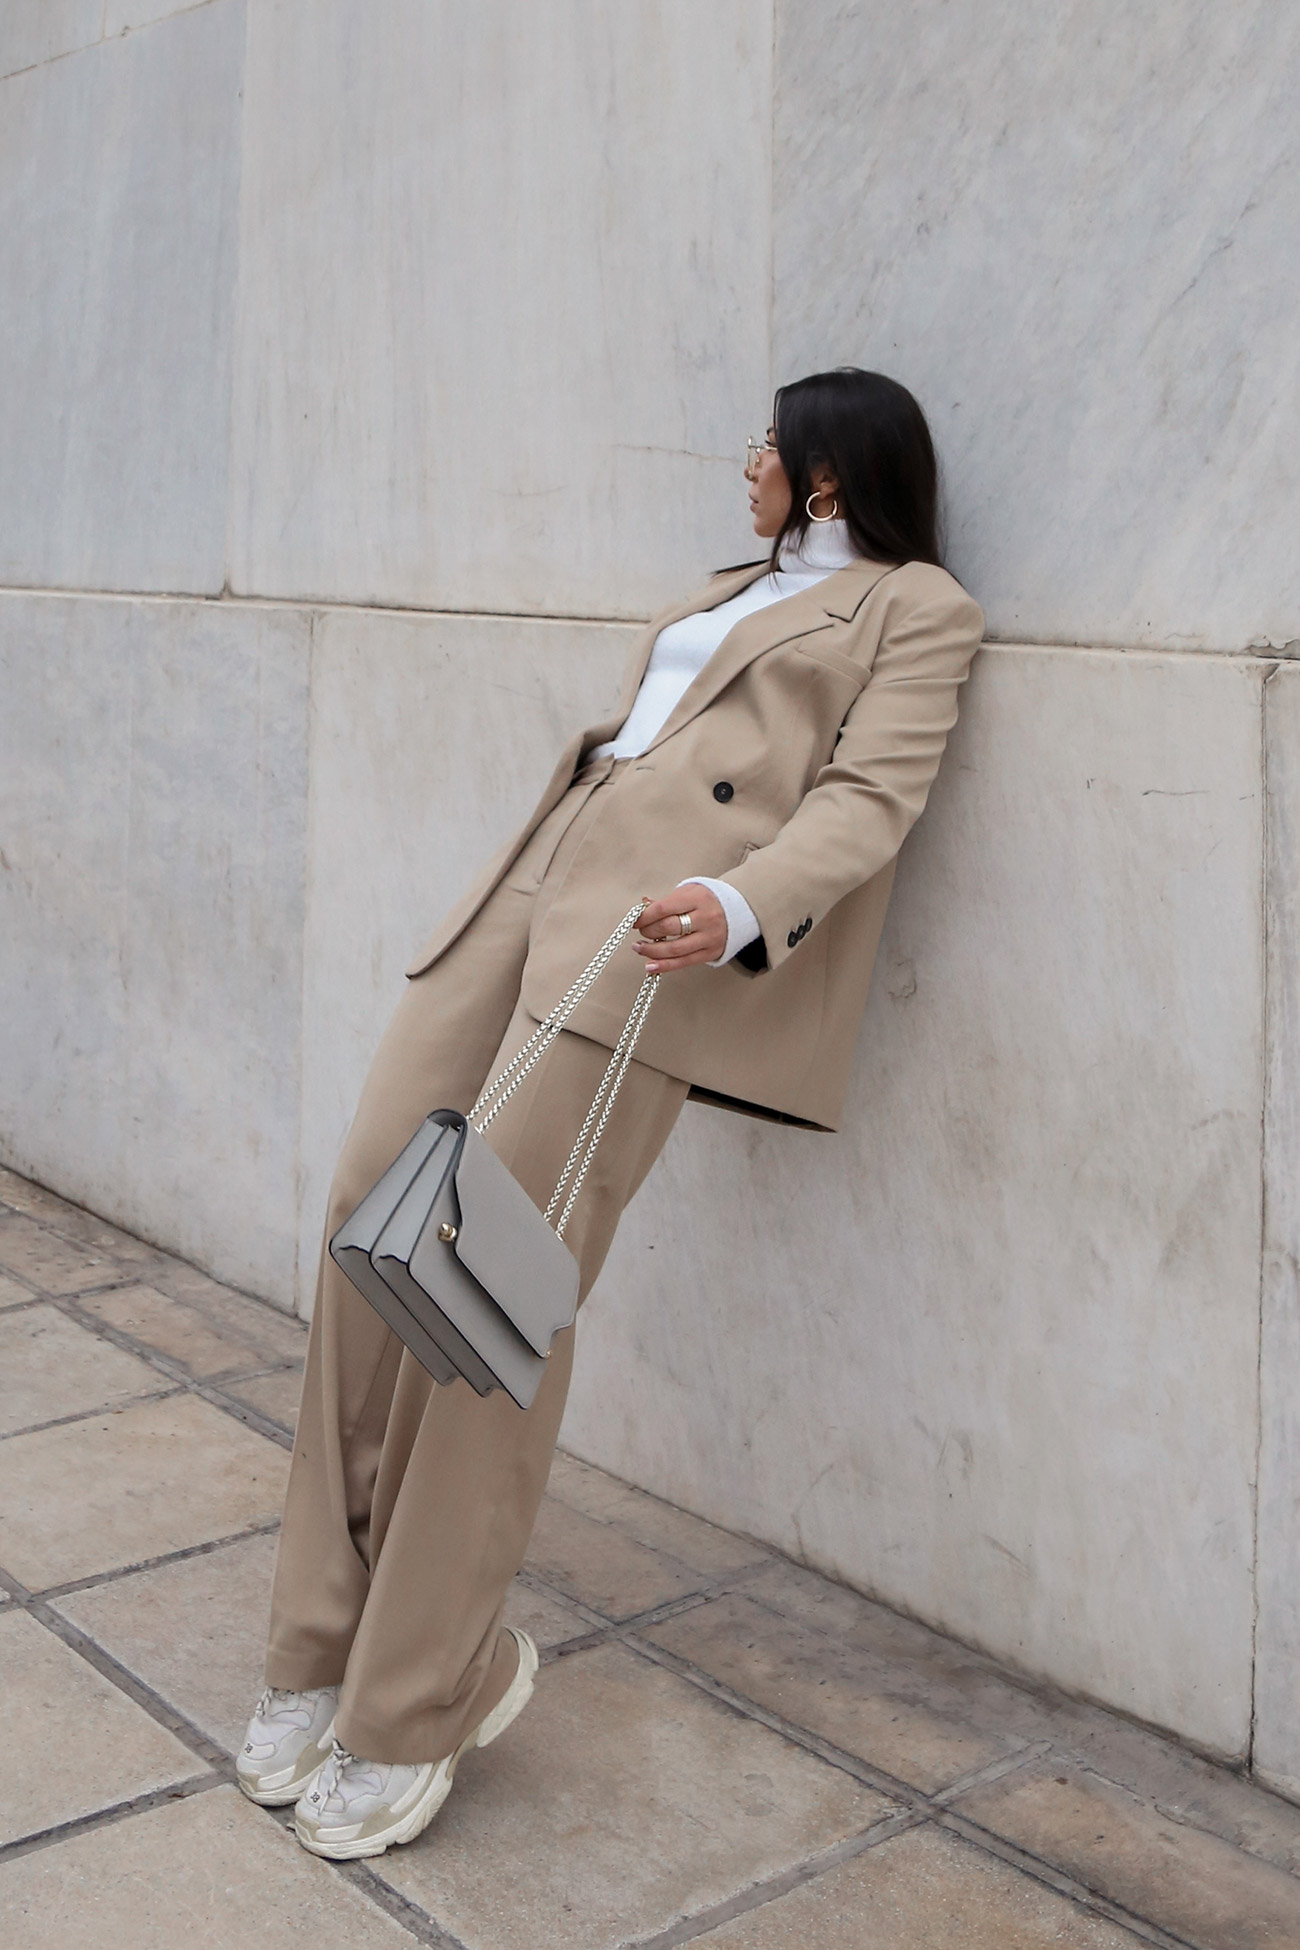 How To Wear A Women's Suit Casually - Stella Asteria dressing down a beige suit